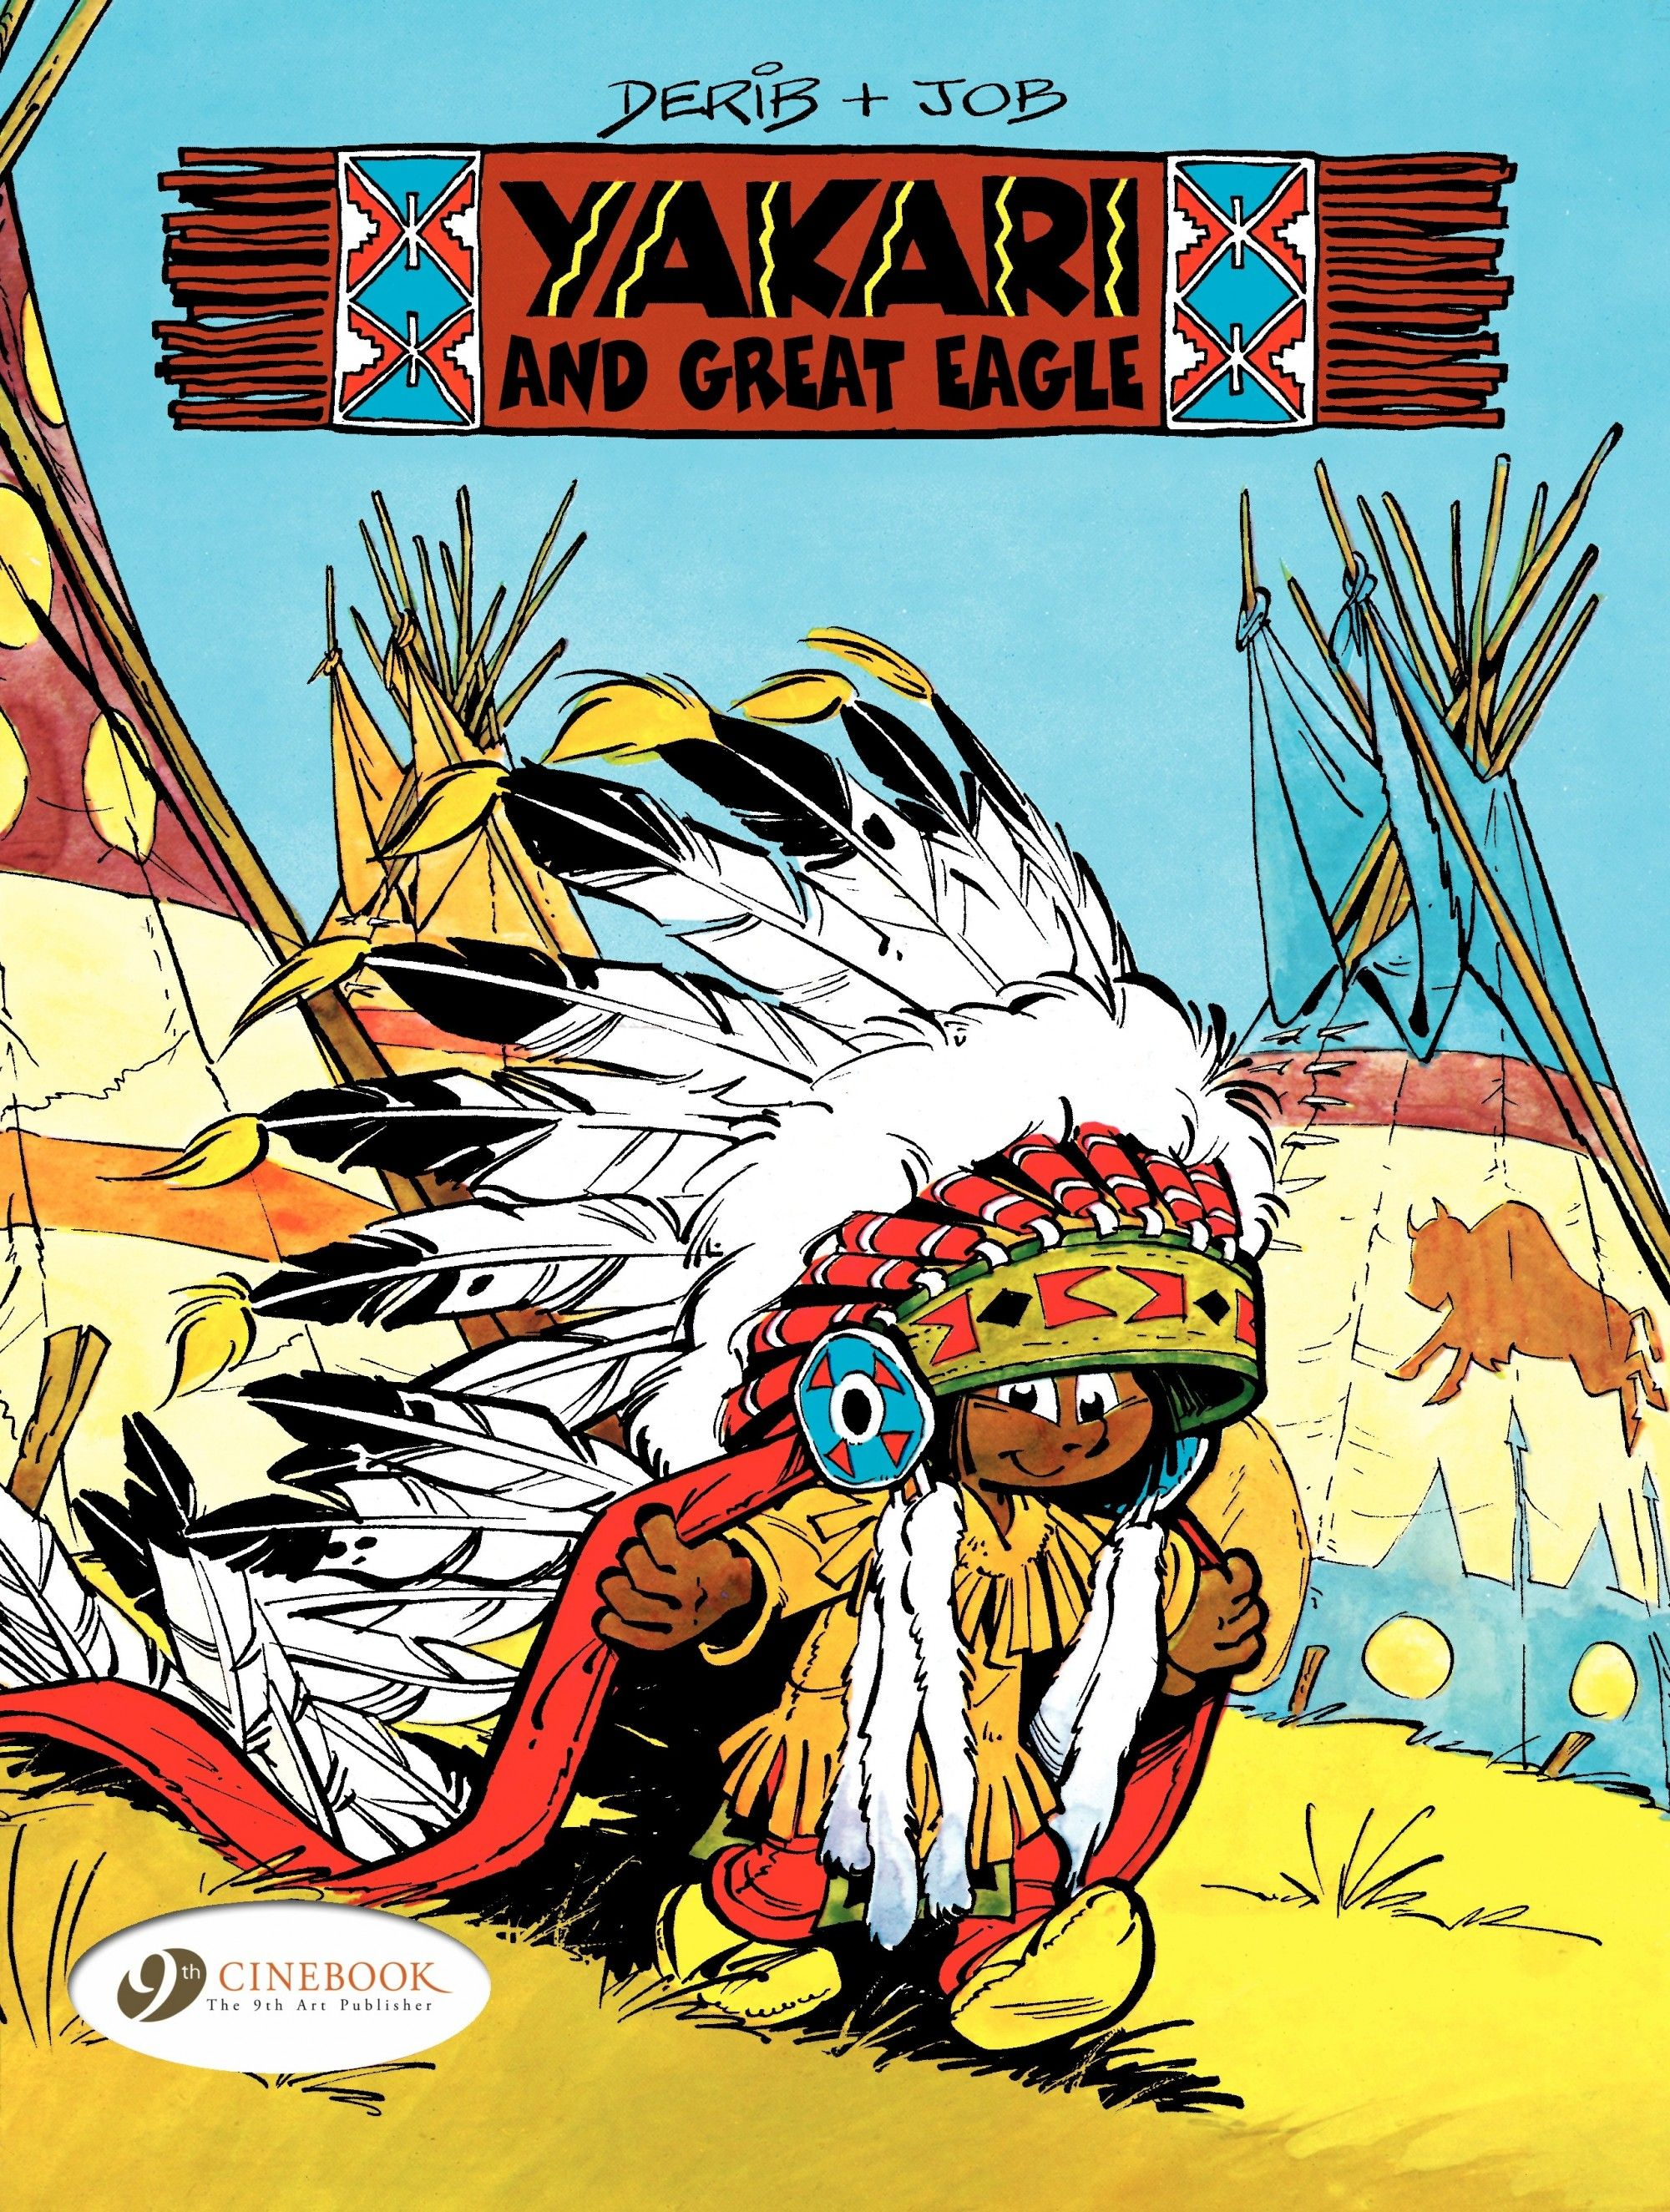 Pin By Arijit On Ligne Claire Comics Read And Wish To Read Comics Books Native American Art